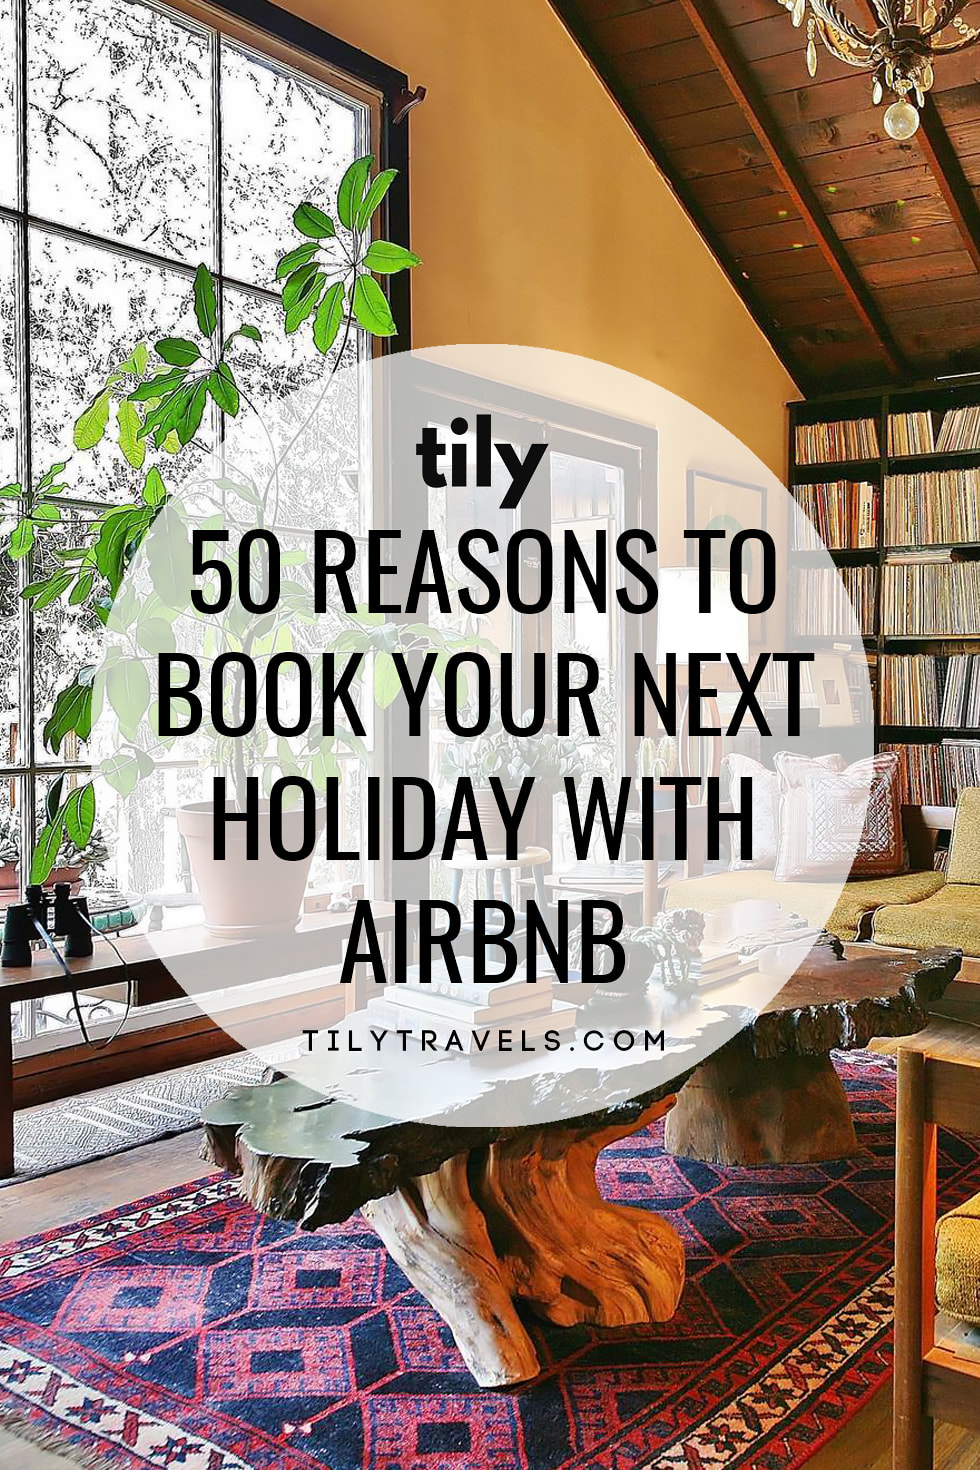 45 reasons to book your next holiday with Airbnb - $45 AUD ($34 USD) off your first booking of $100 or more - Tily Travels.